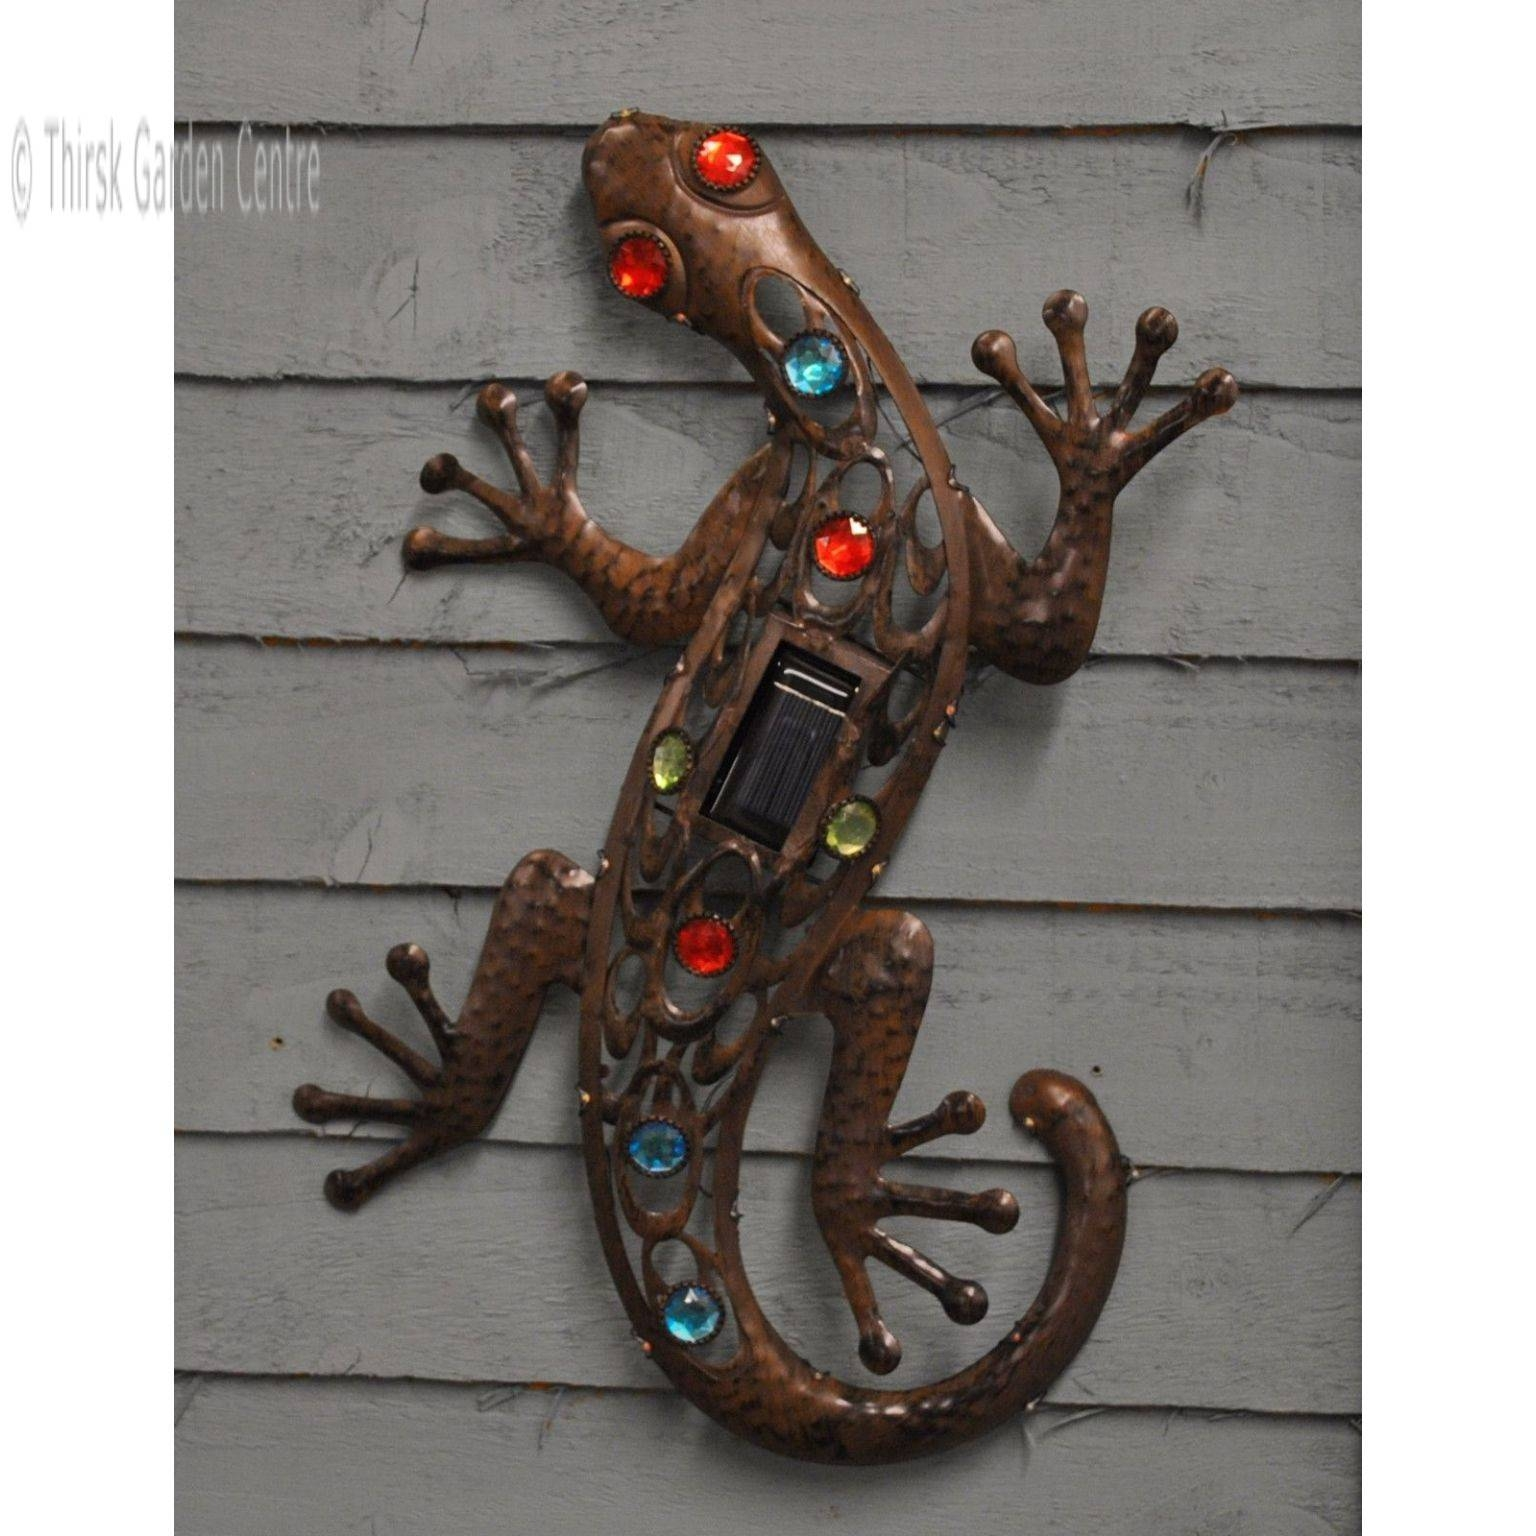 Solar Led Gecko Metal Wall Art – Solar Lights – Thirsk Garden Centre With Regard To Most Recently Released Gecko Metal Wall Art (View 14 of 20)